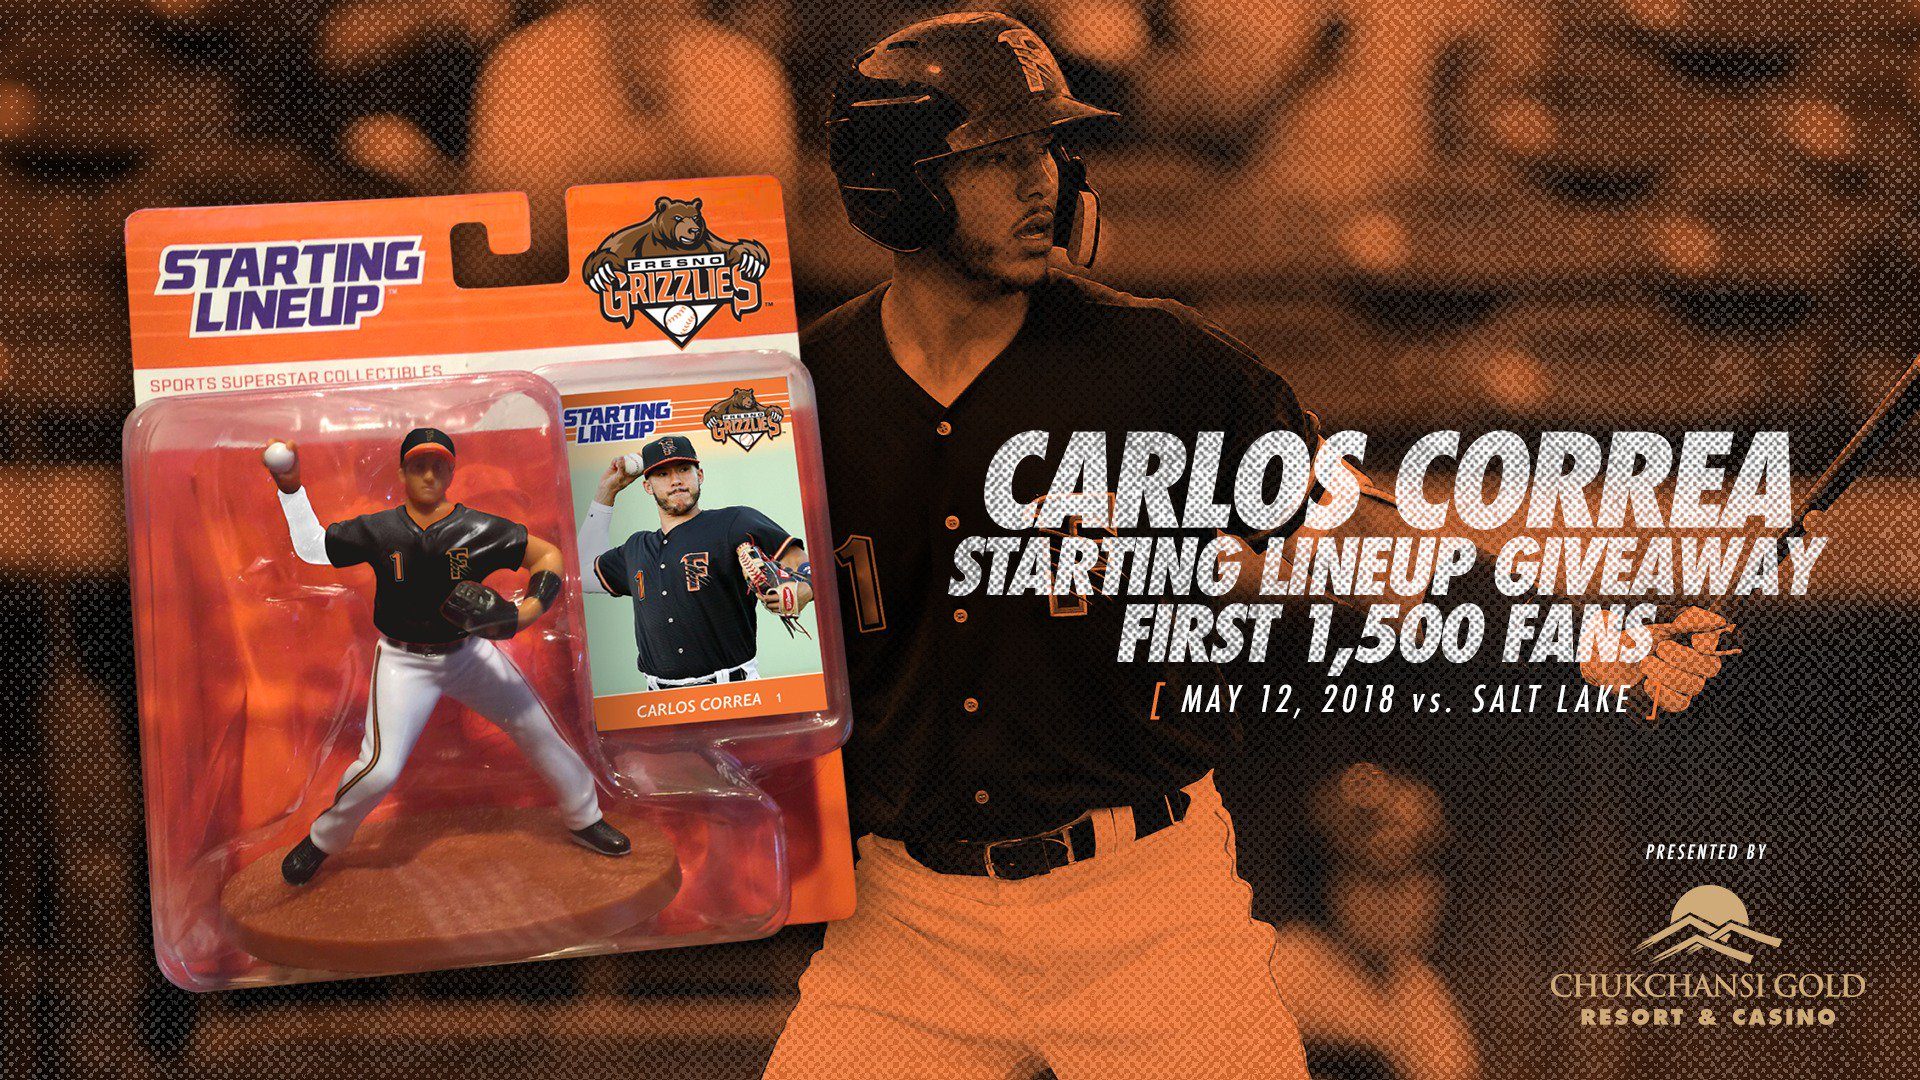 Fresno Grizzlies On Twitter Individual Game Tickets Go On